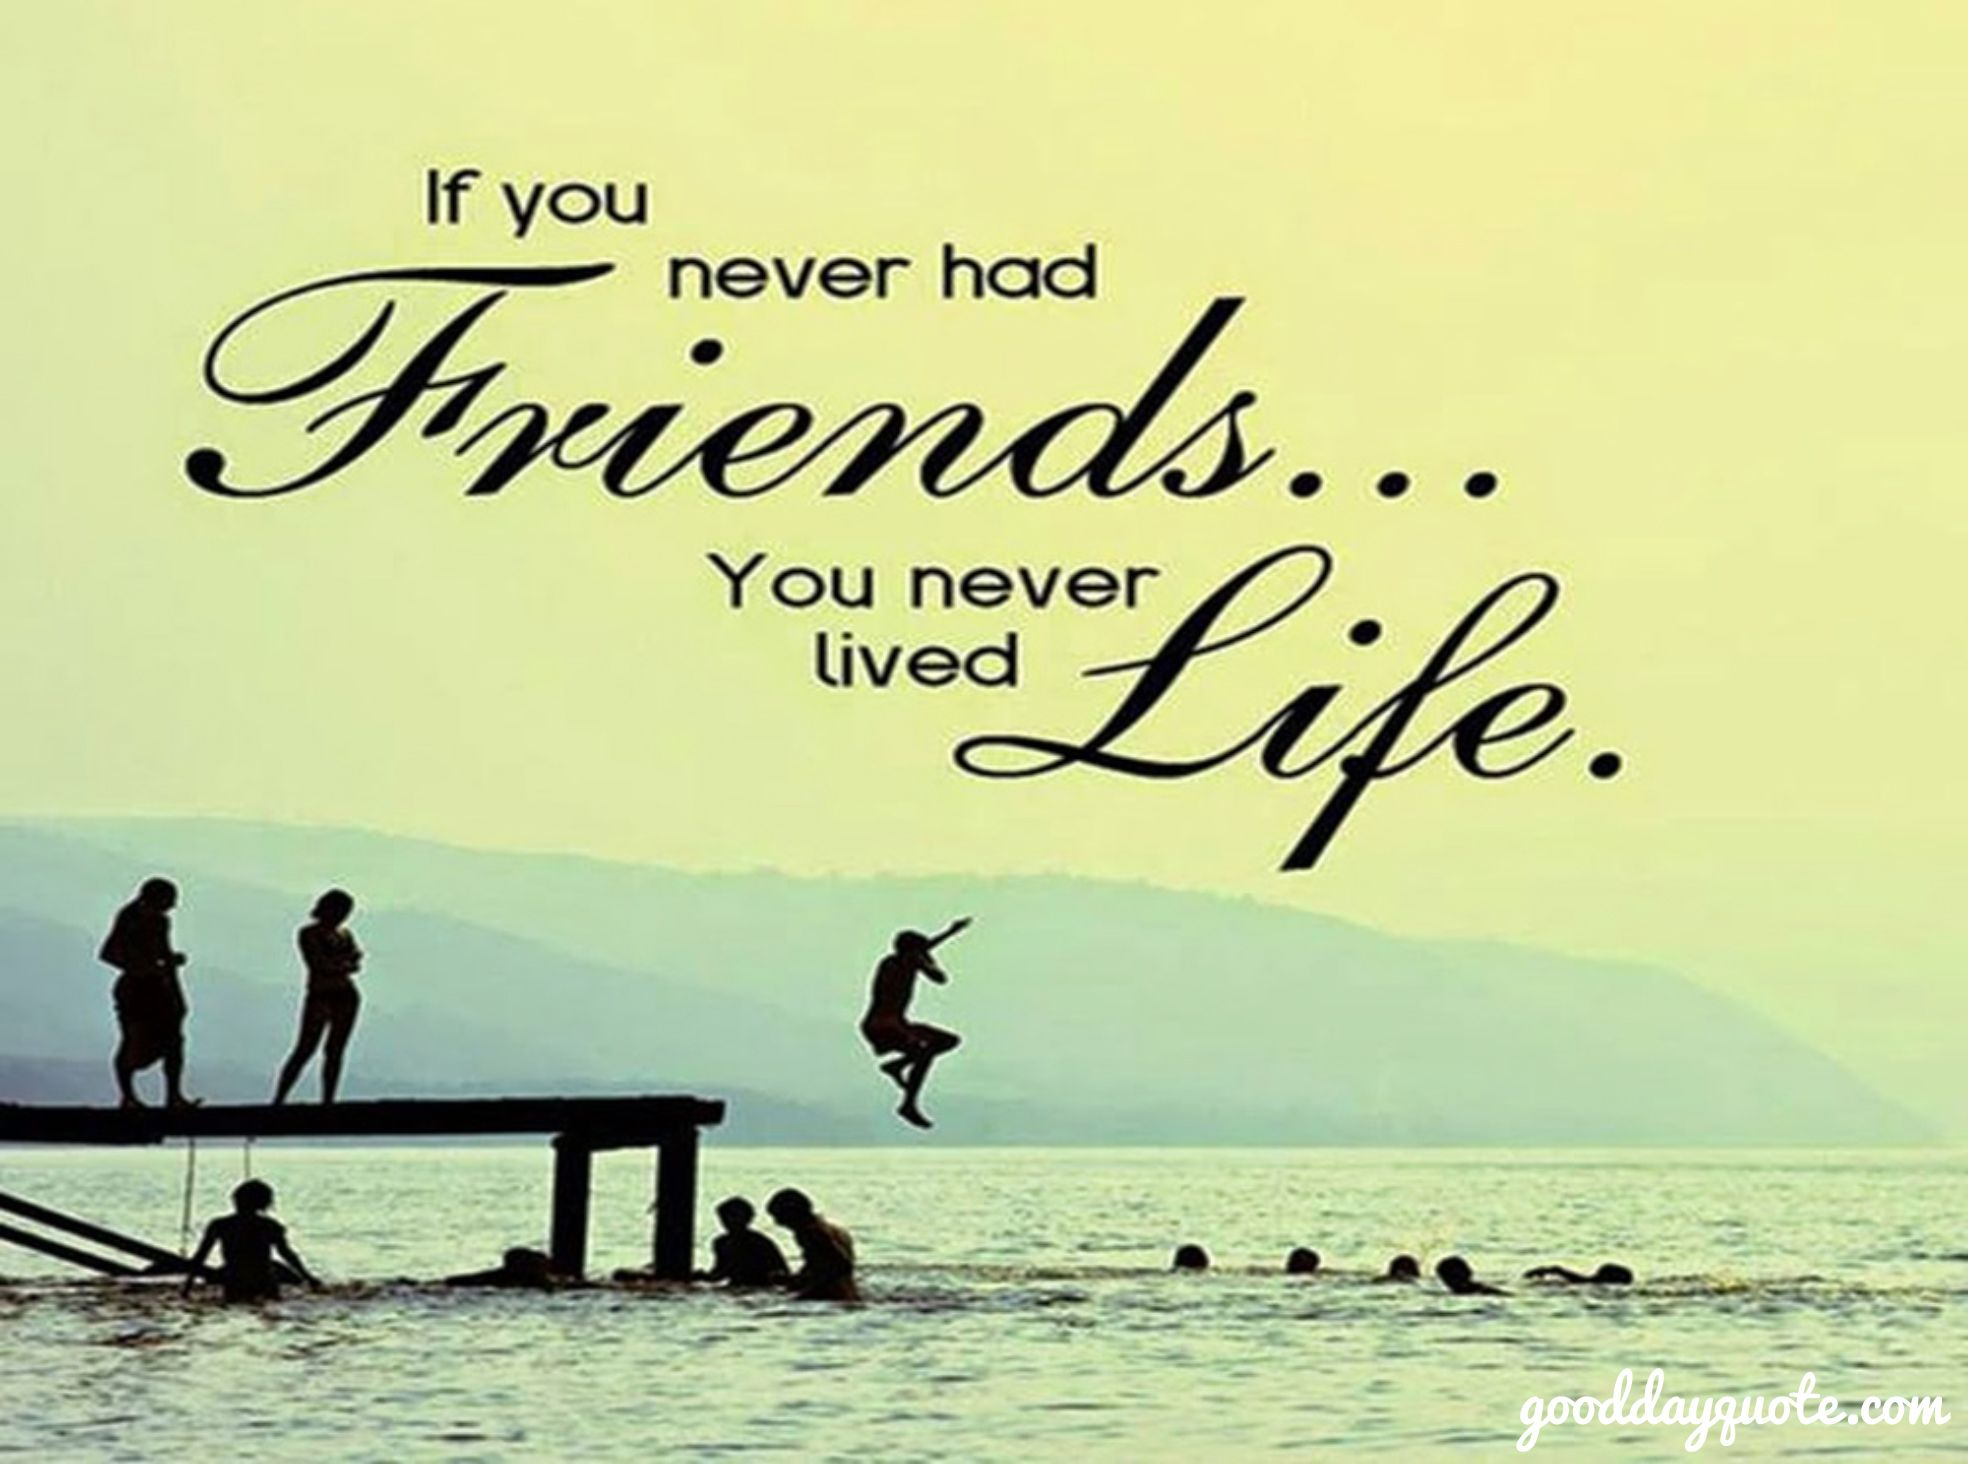 Quotes About Pearls And Friendship Image Result For Whatsapp Profile Picture Download  Pearls Of